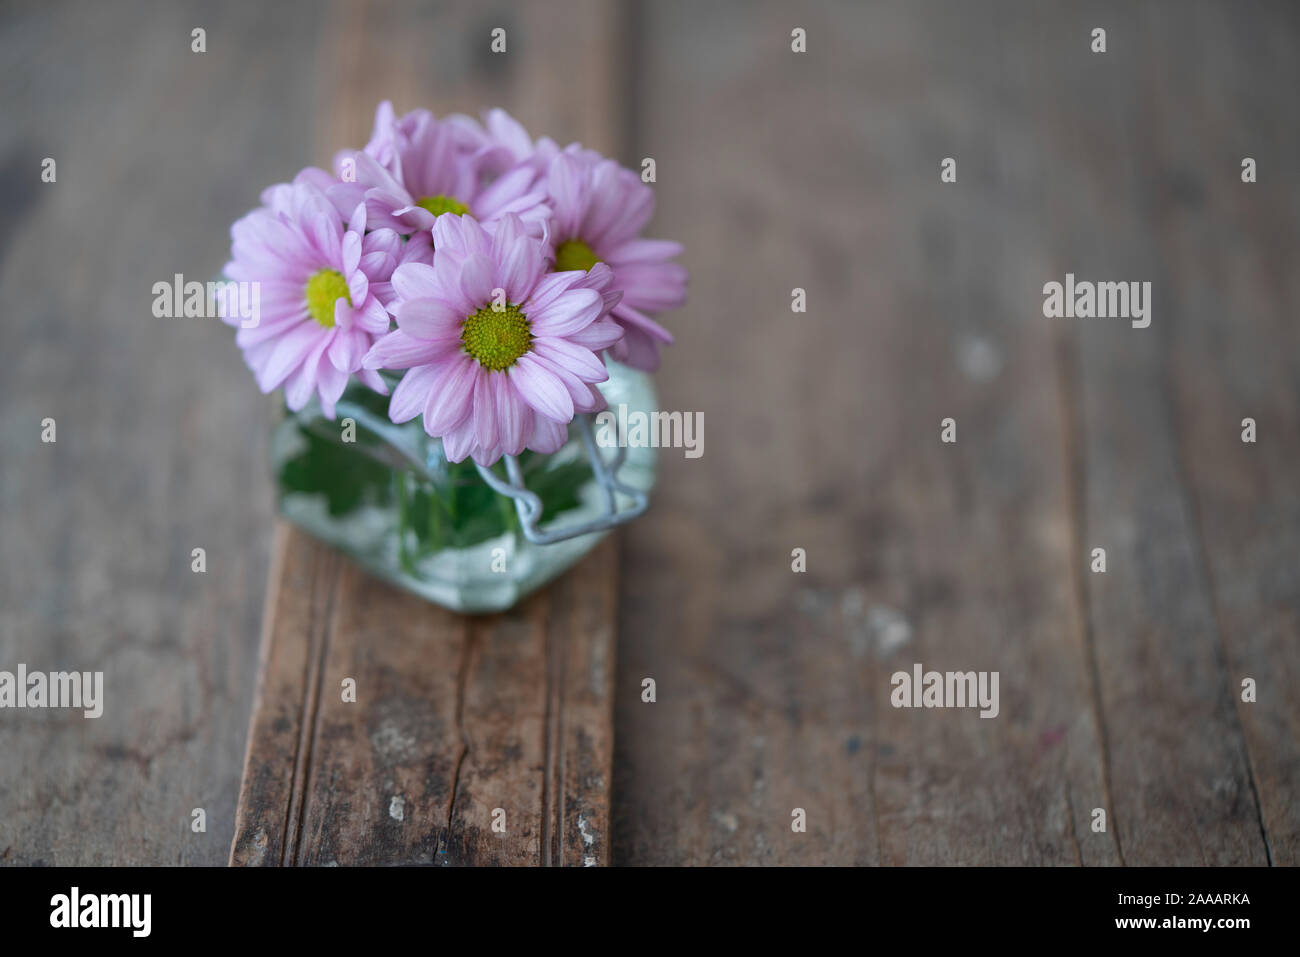 Pink asters in a small glass vase from above on a rustic shabby wooden furniture Stock Photo